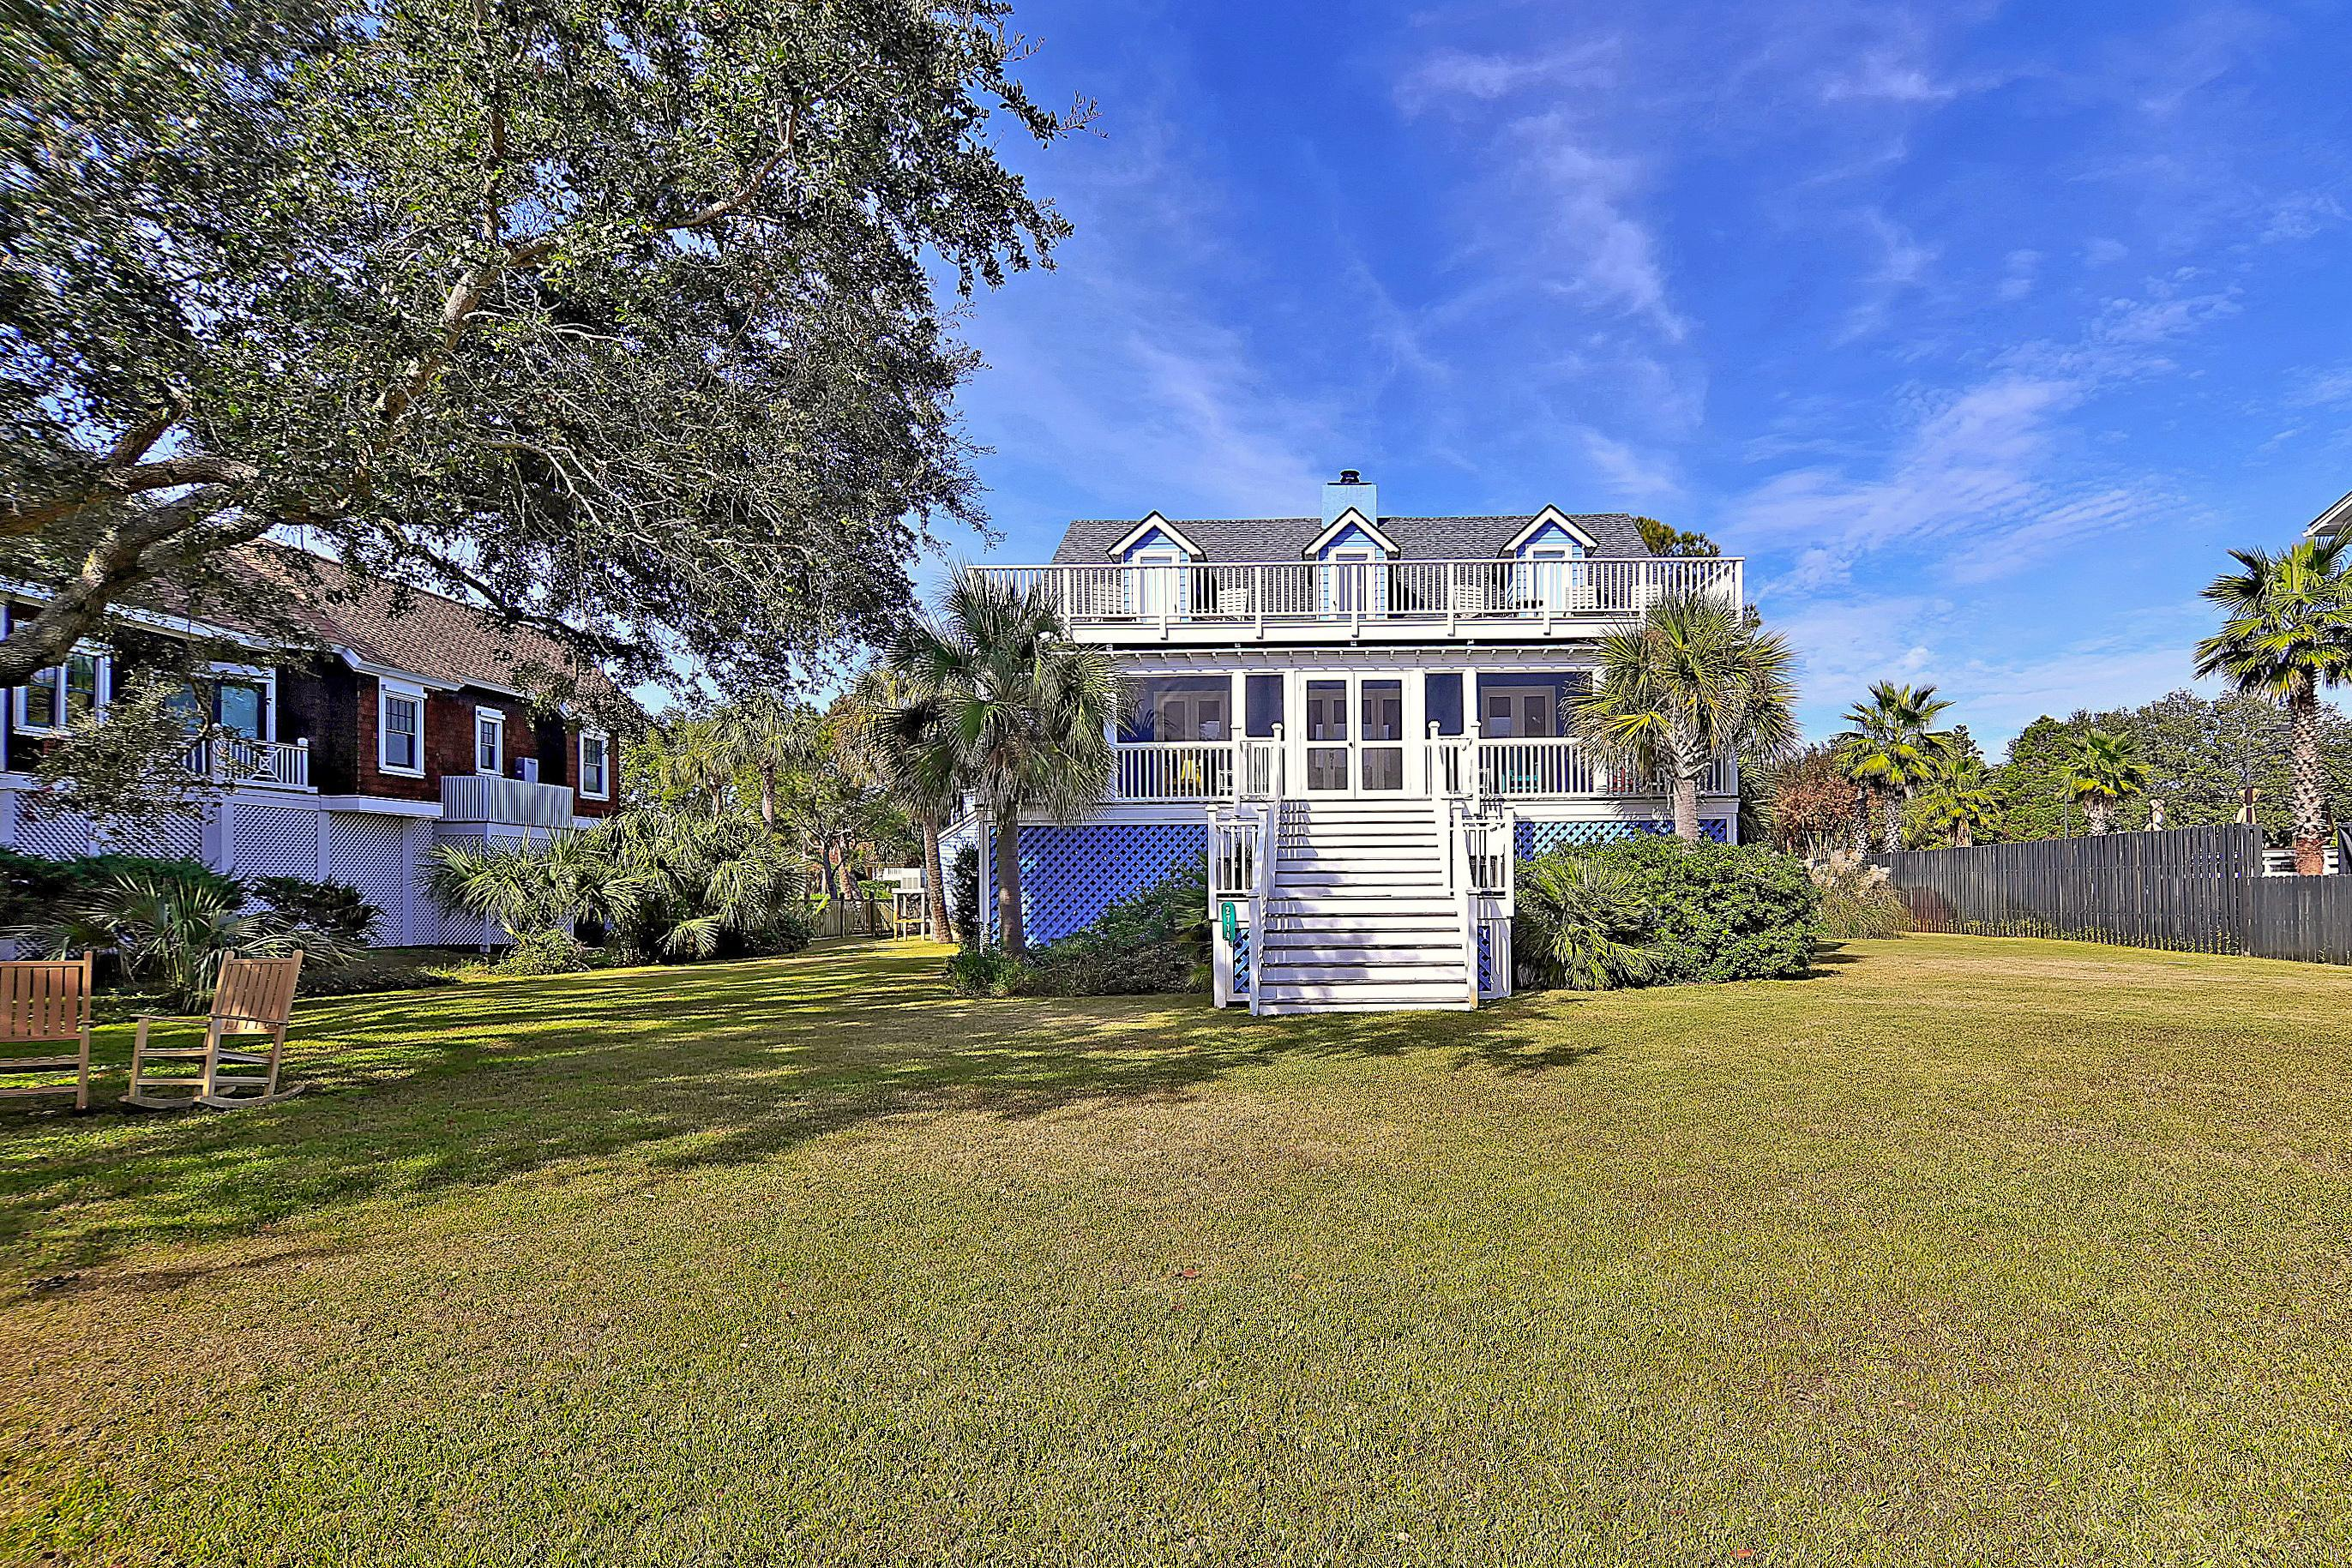 Welcome to Sullivan's Island! A balcony, sun deck, and a sprawling porch overlook the lush yard.